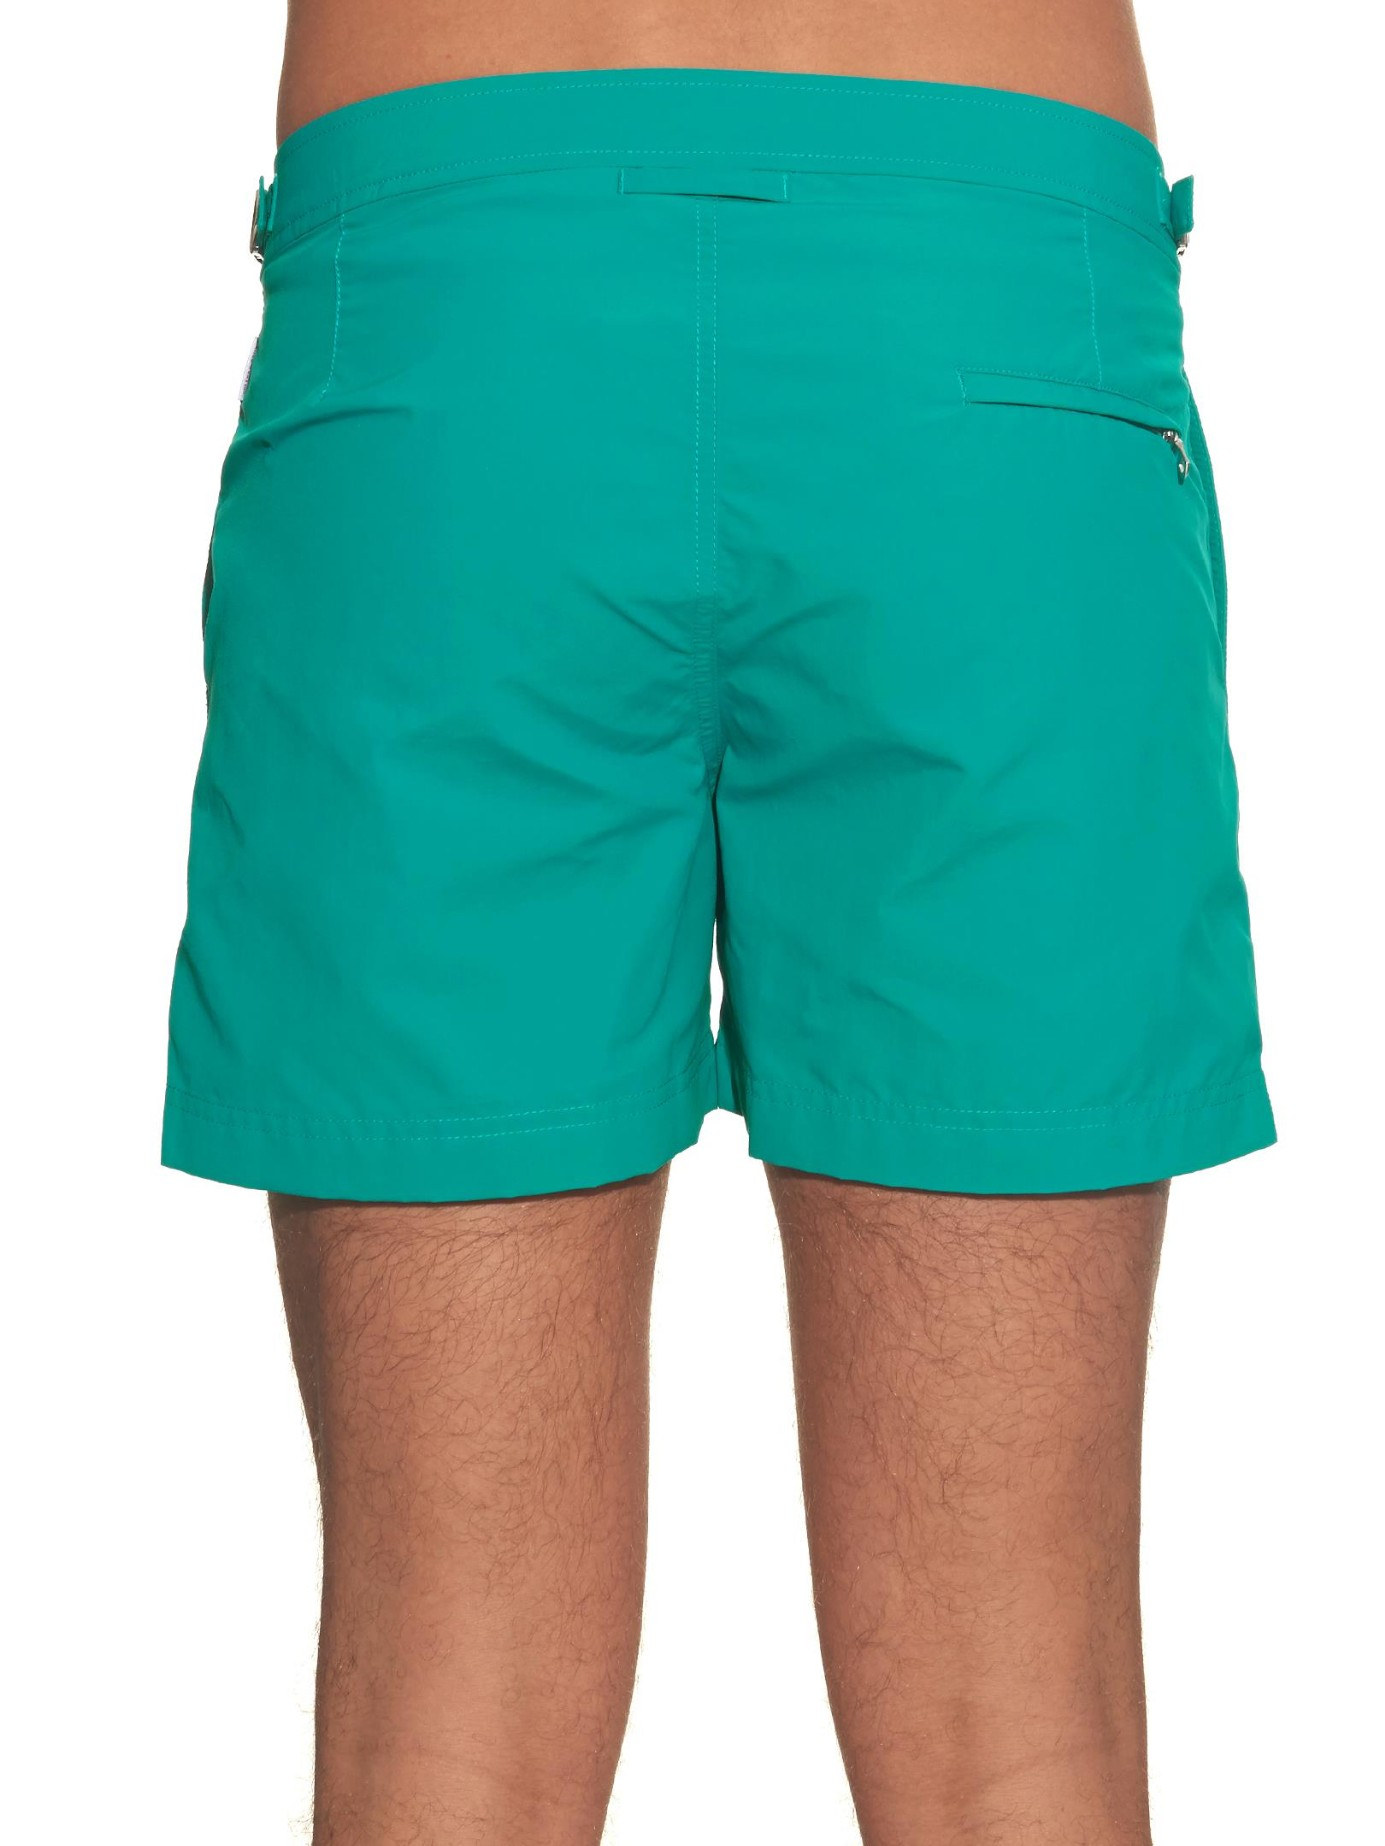 Buy Authentic Online 2018 Cheap Online beach shorts - Green Orlebar Brown Best Store To Get Cheap Price jTdYuUv